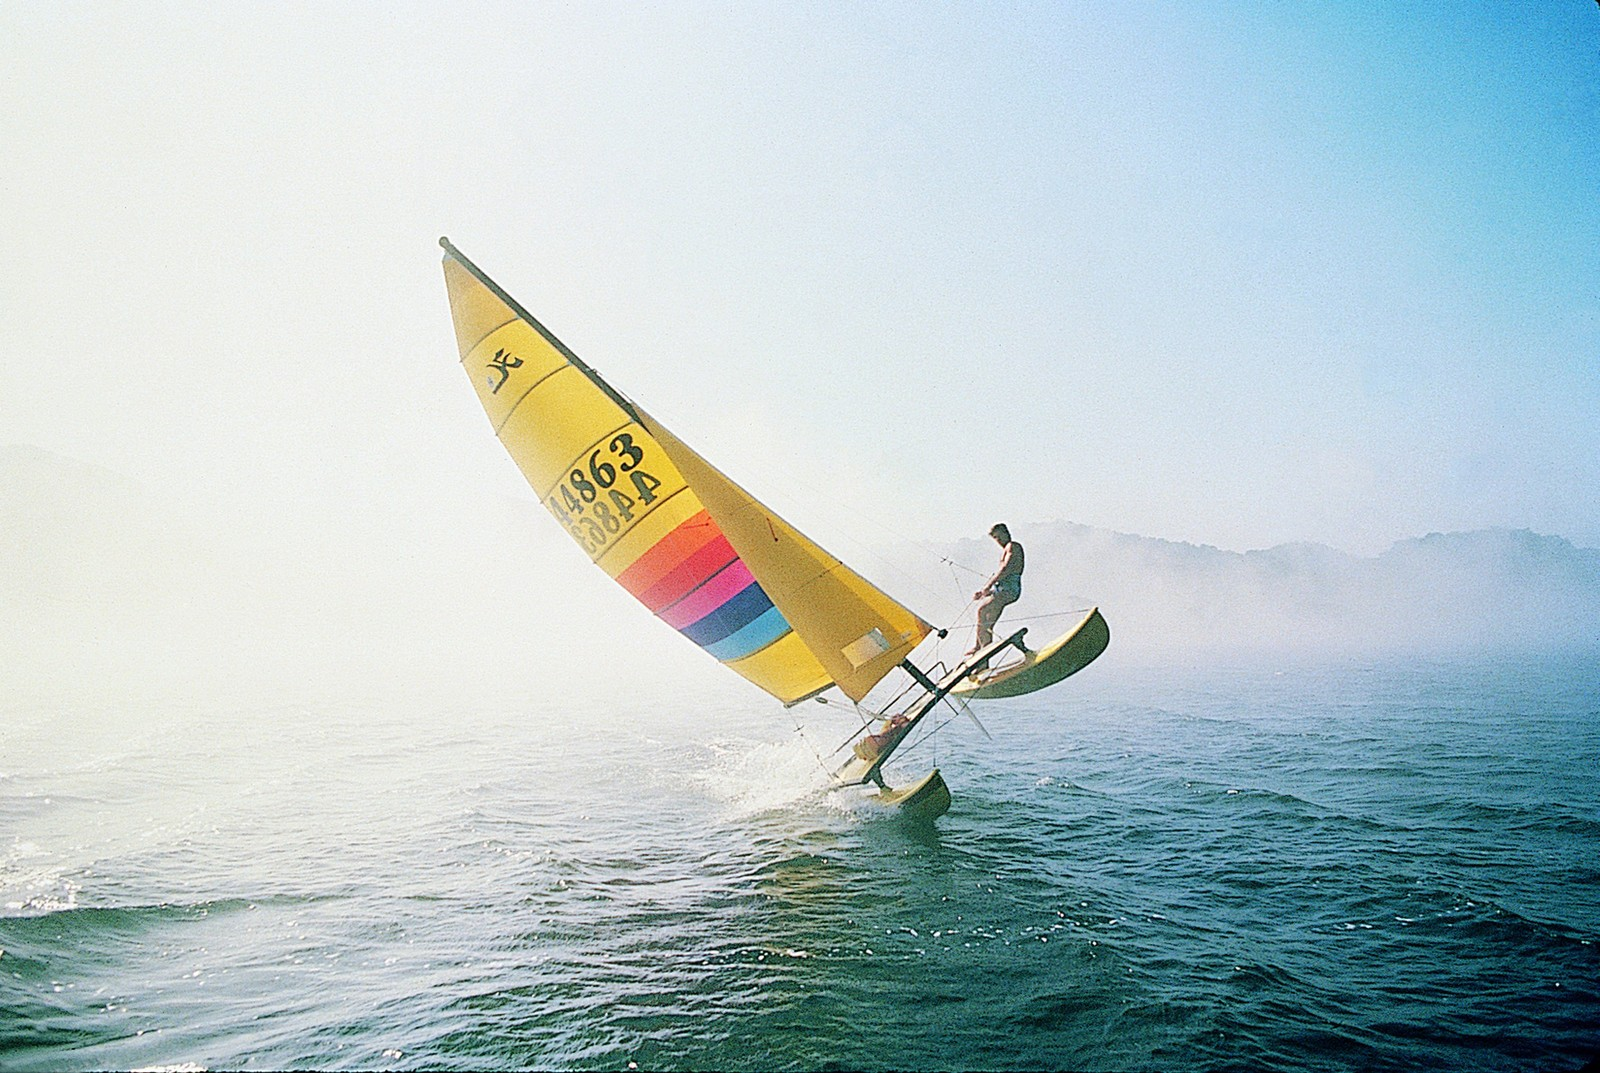 Hobie 14 Fiberglass Sailboats Hobie Cat